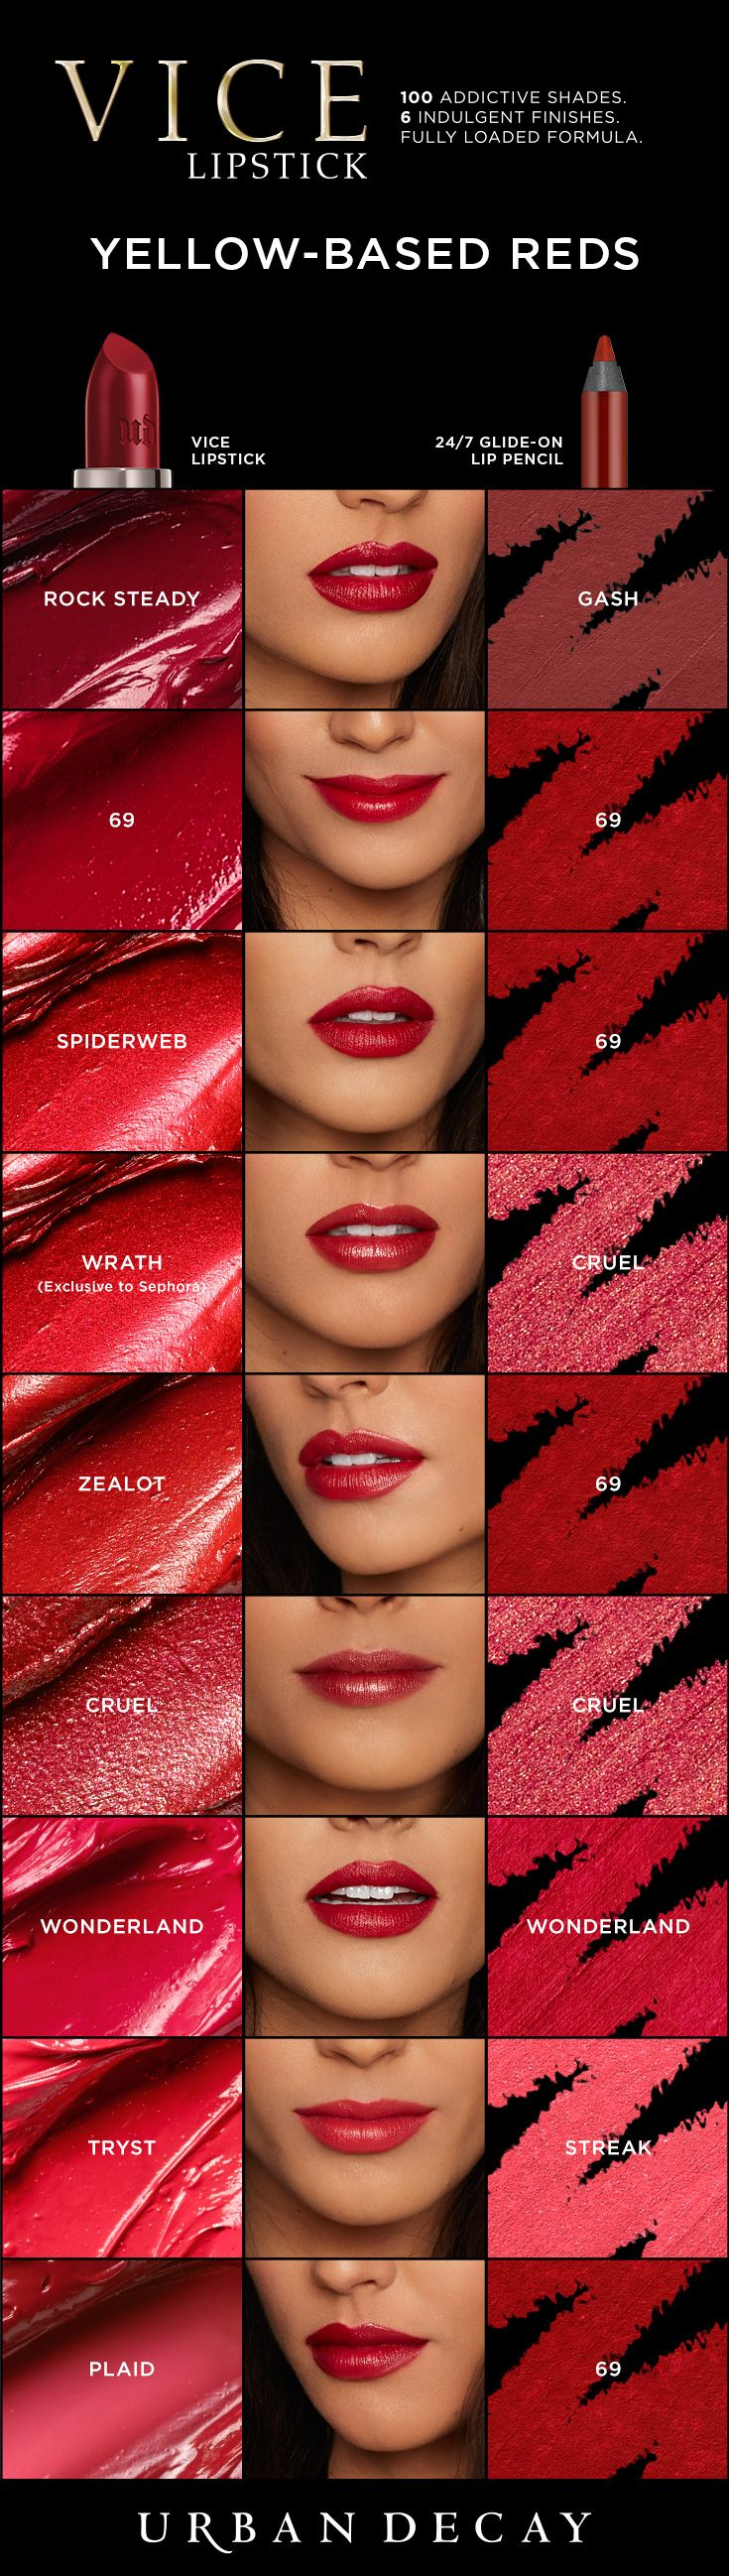 We're all about bold red lips. Find your perfect shade of Vice Lipstick for the holiday season now at urbandecay.com.